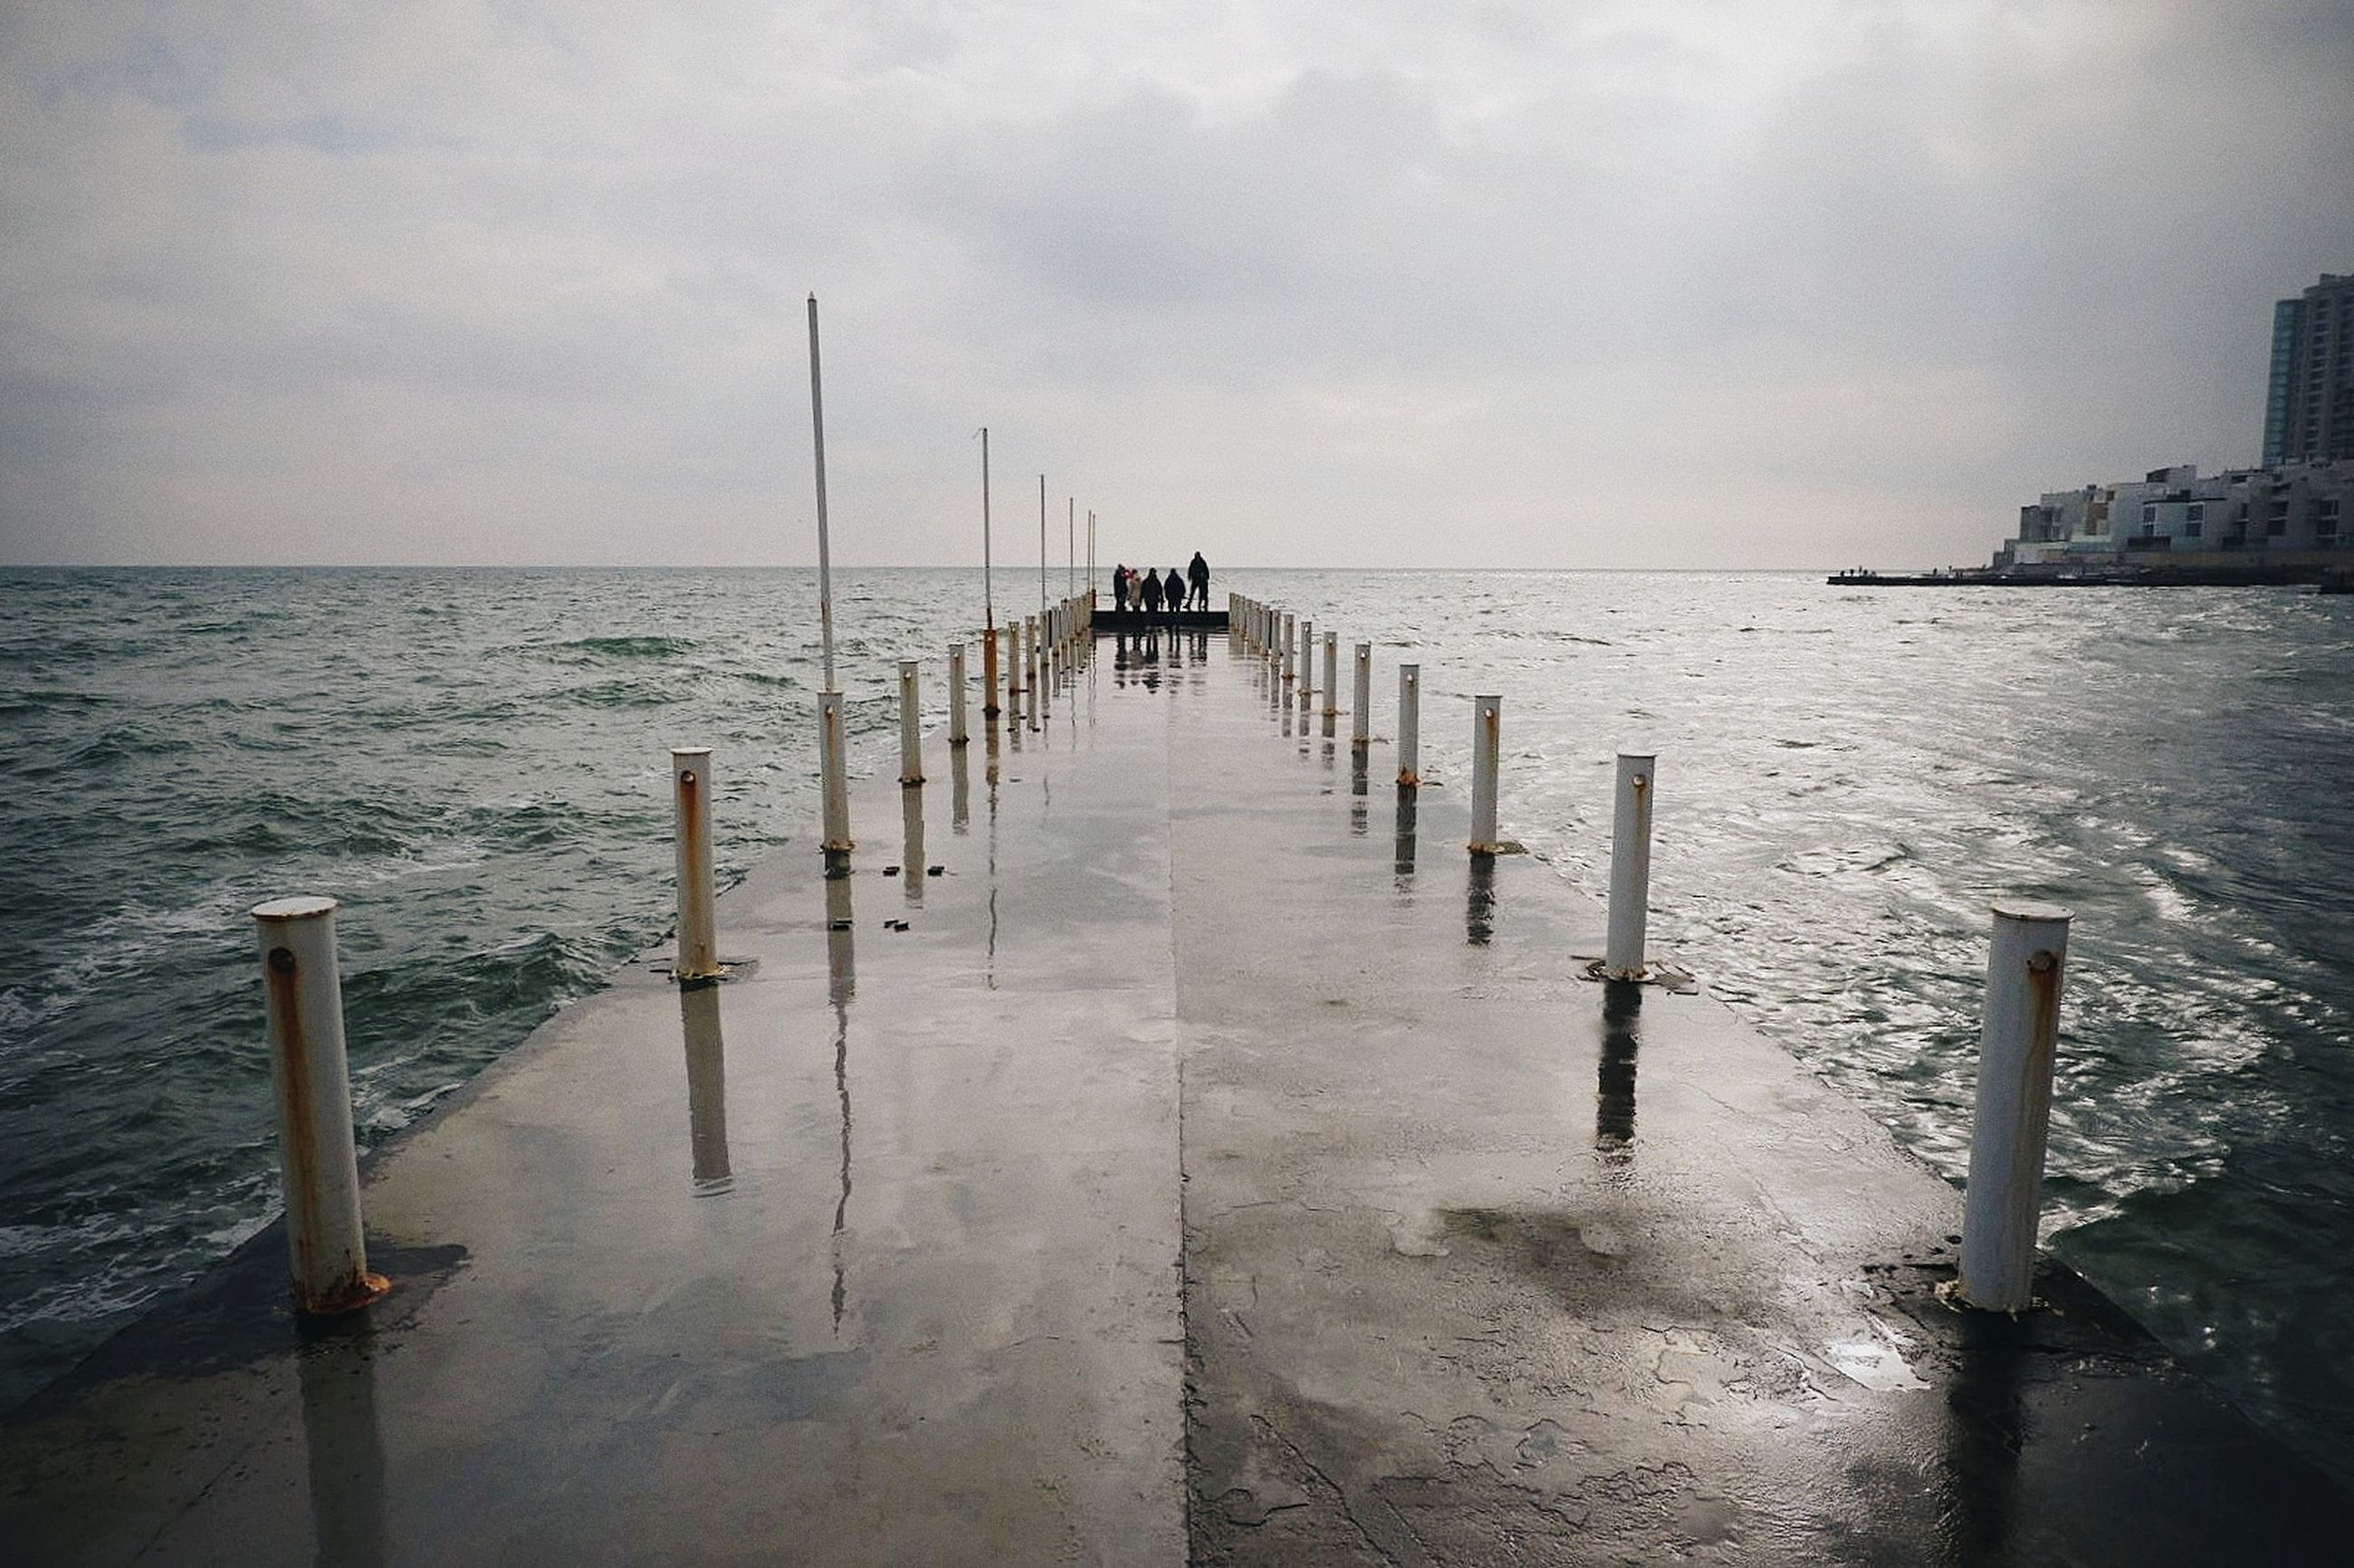 water, sea, sky, horizon, cloud - sky, pier, post, horizon over water, nature, scenics - nature, beauty in nature, tranquility, direction, architecture, built structure, tranquil scene, day, wood - material, beach, wooden post, no people, outdoors, diminishing perspective